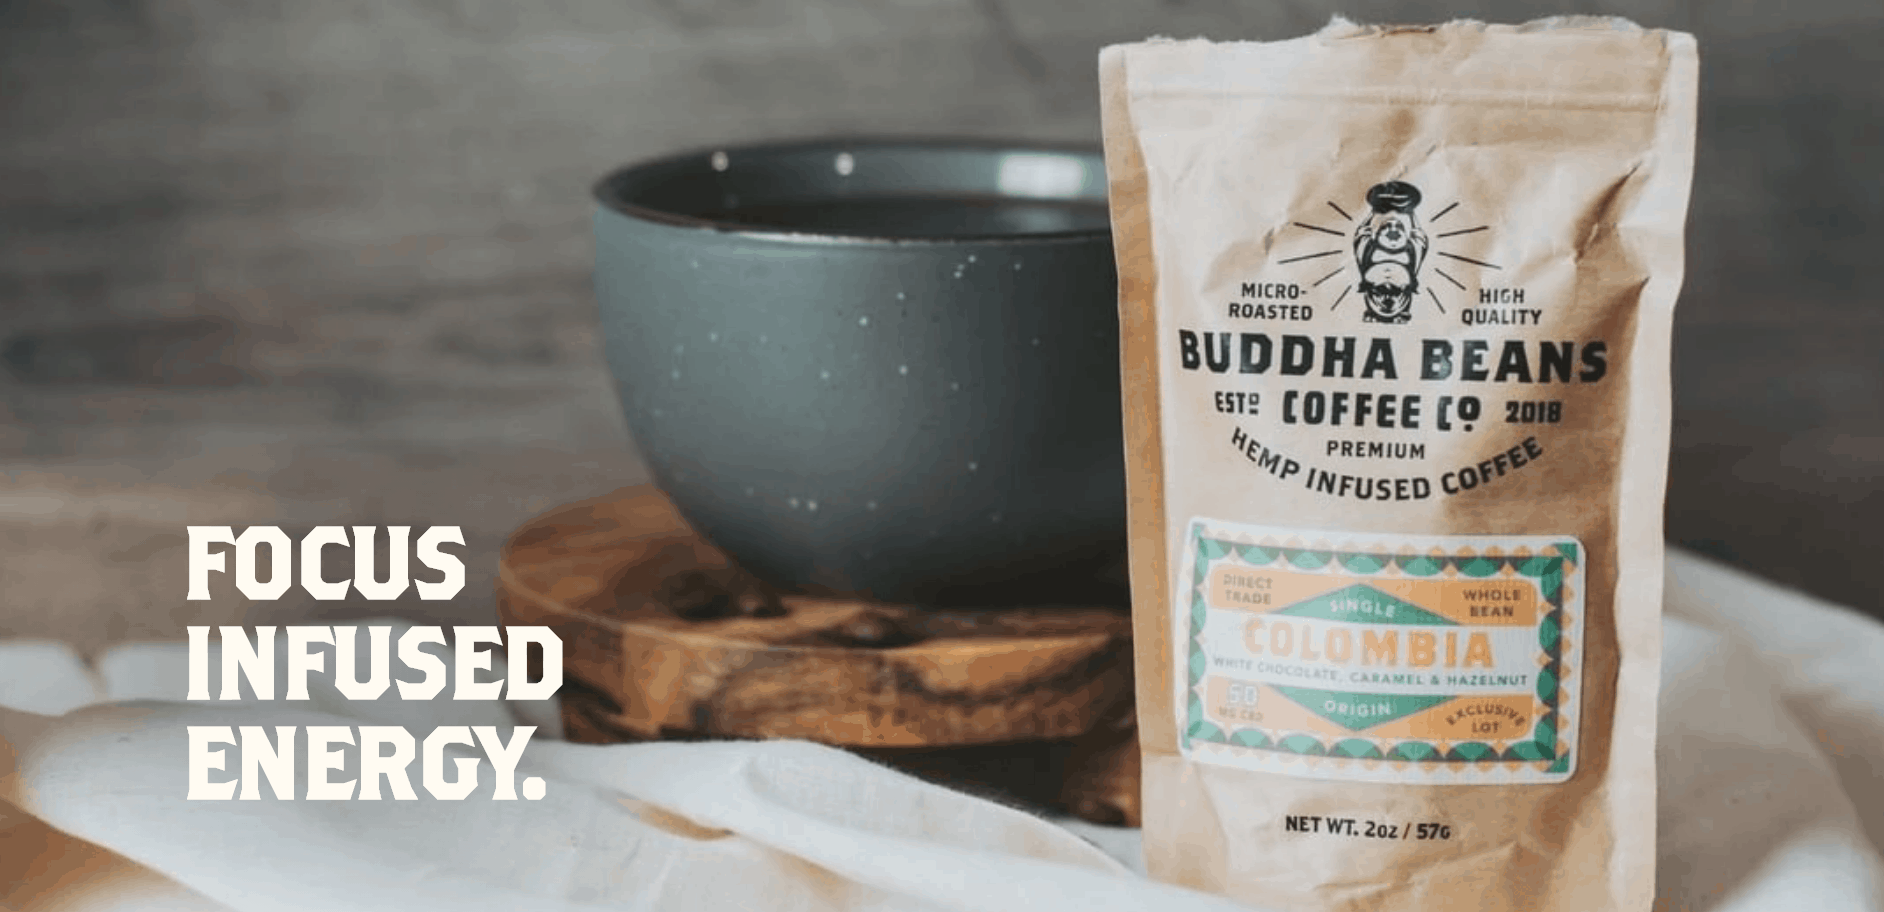 Buddha Beans Coffee Focused Infused Energy